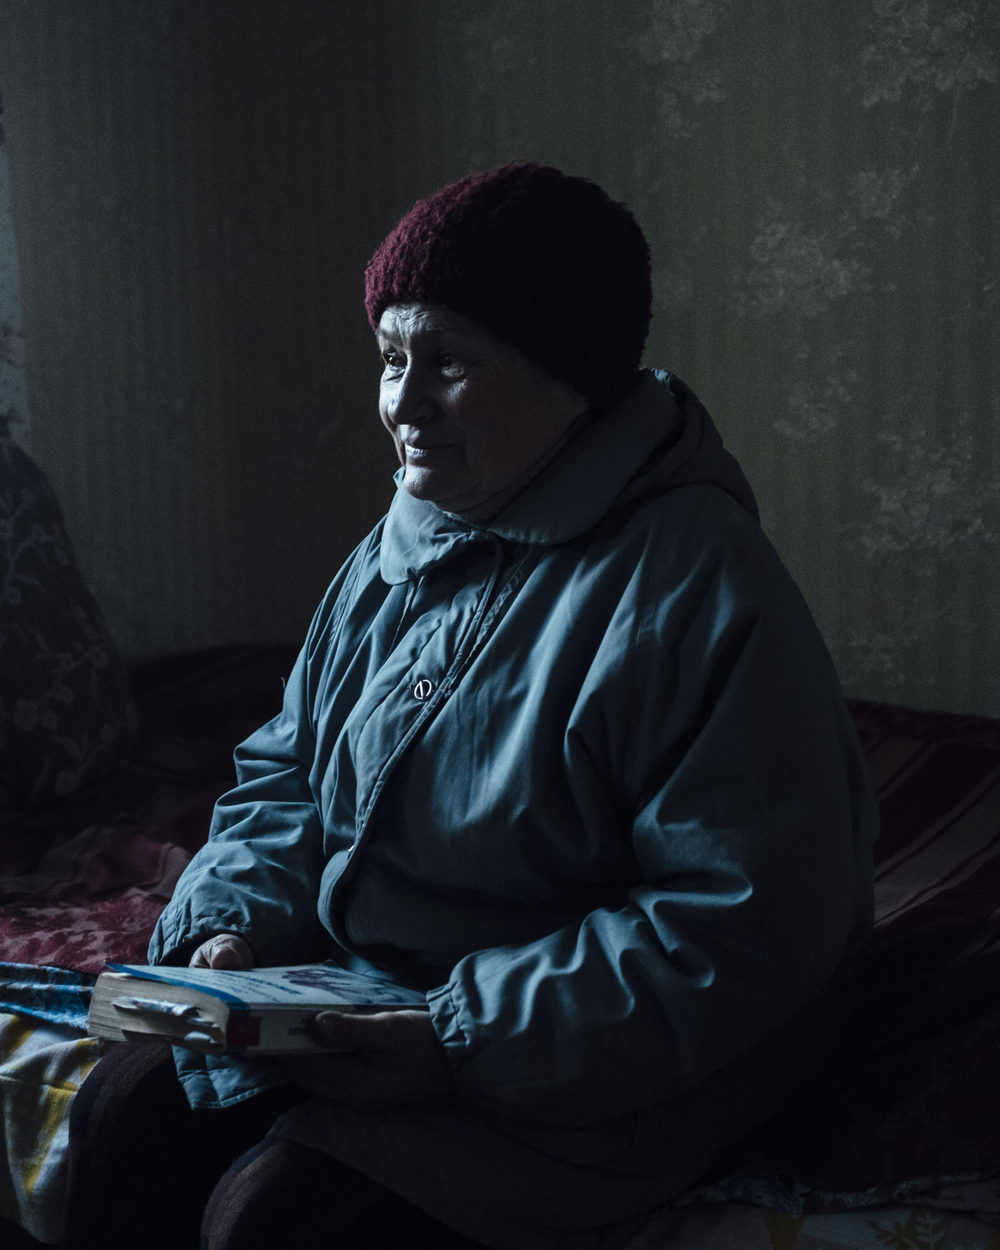 Svetlana is sitting in the living room in her house in the hard hit town of pesky. She was talking about the war and how pesky is affected by it.